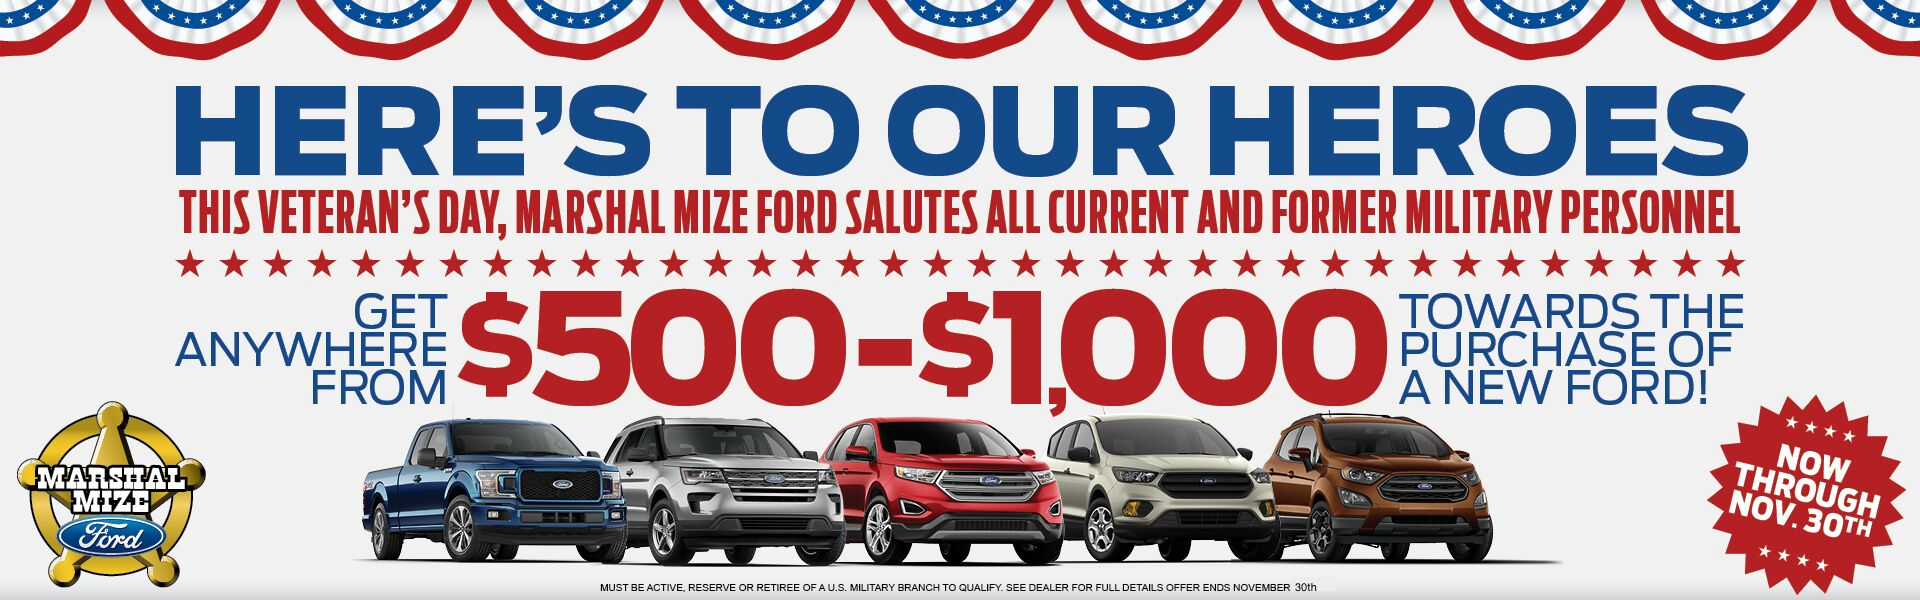 Ford Dealership Chattanooga Tn Used Cars Marshal Mize Ford